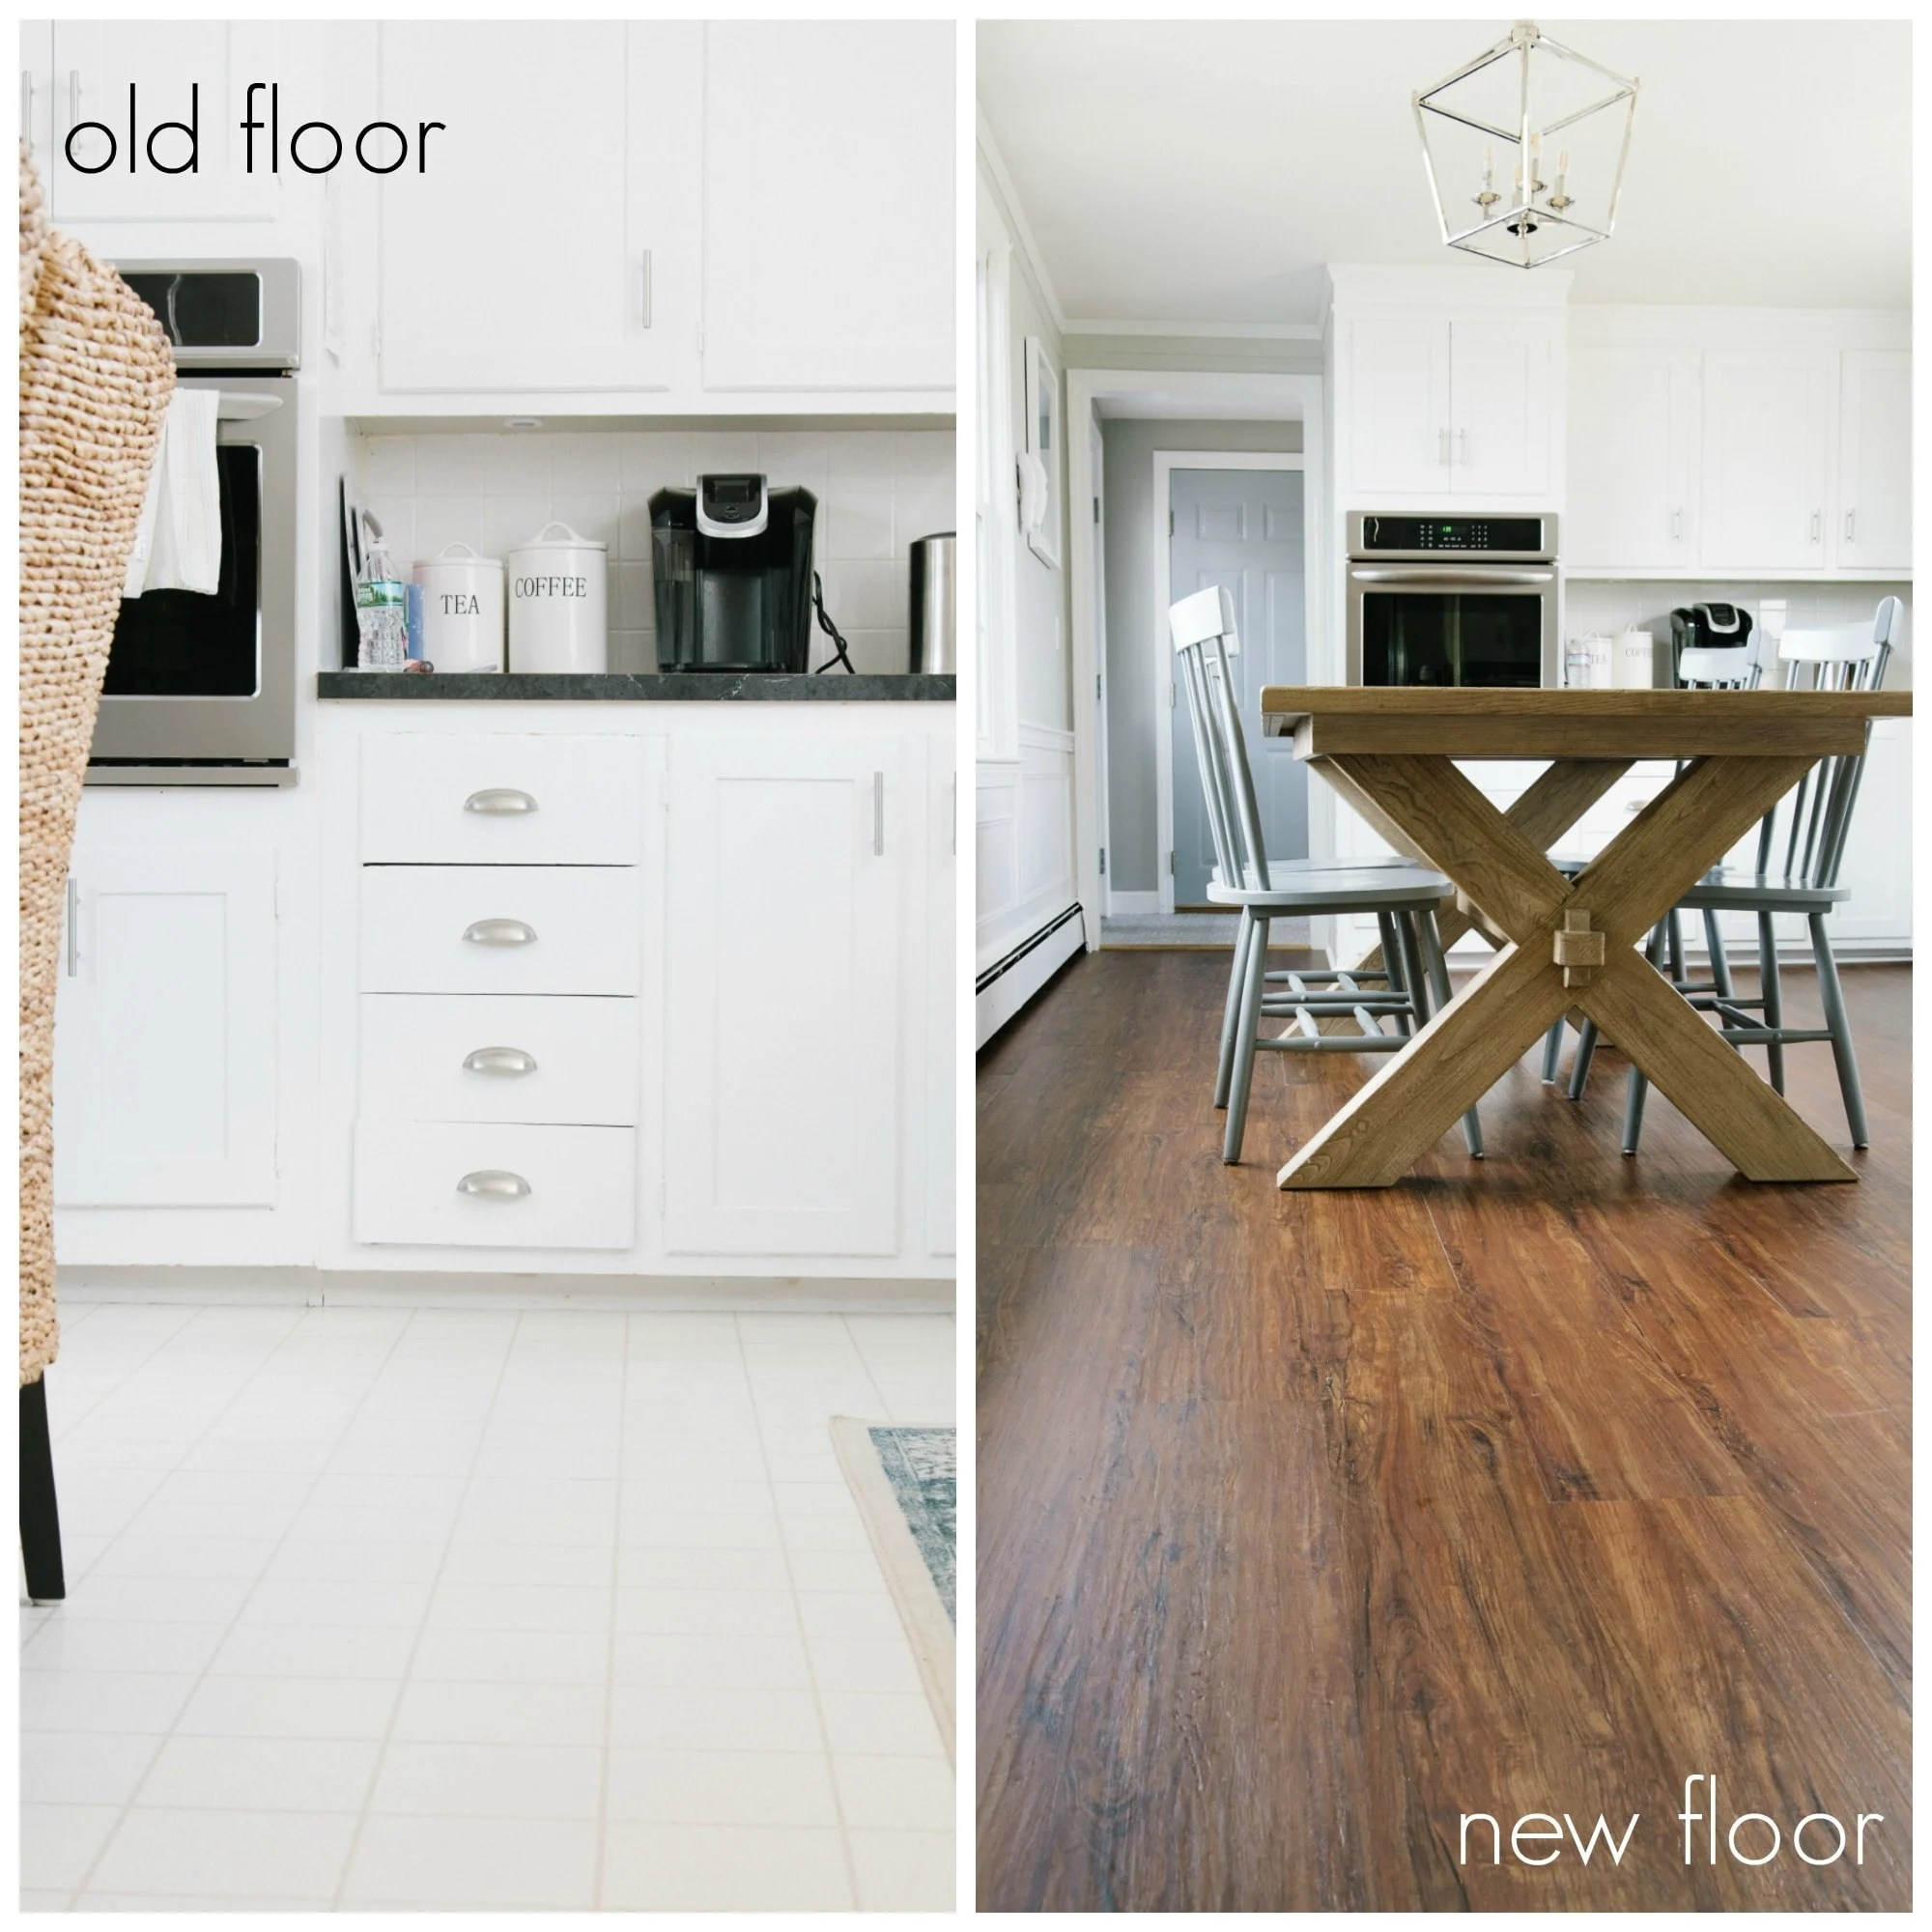 How to install luxury vinyl plank flooring,  before and after